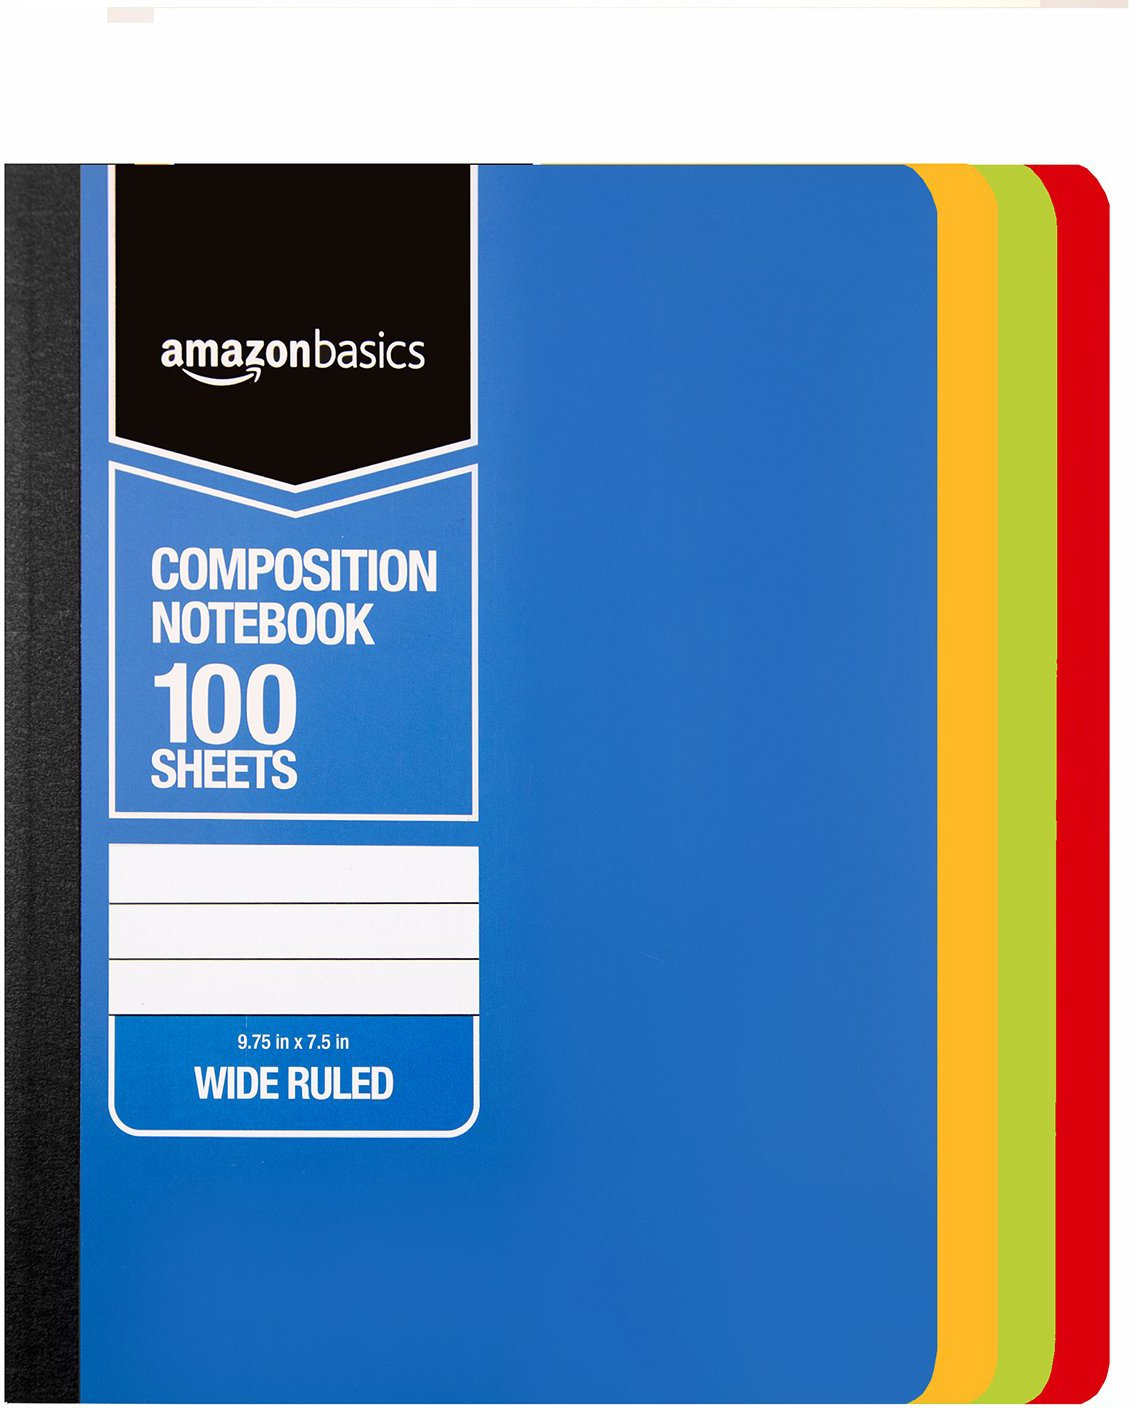 AmazonBasics Wide Ruled Composition Notebook, 100 Sheet, Assorted Solid Colors, 36-Pack by AmazonBasics